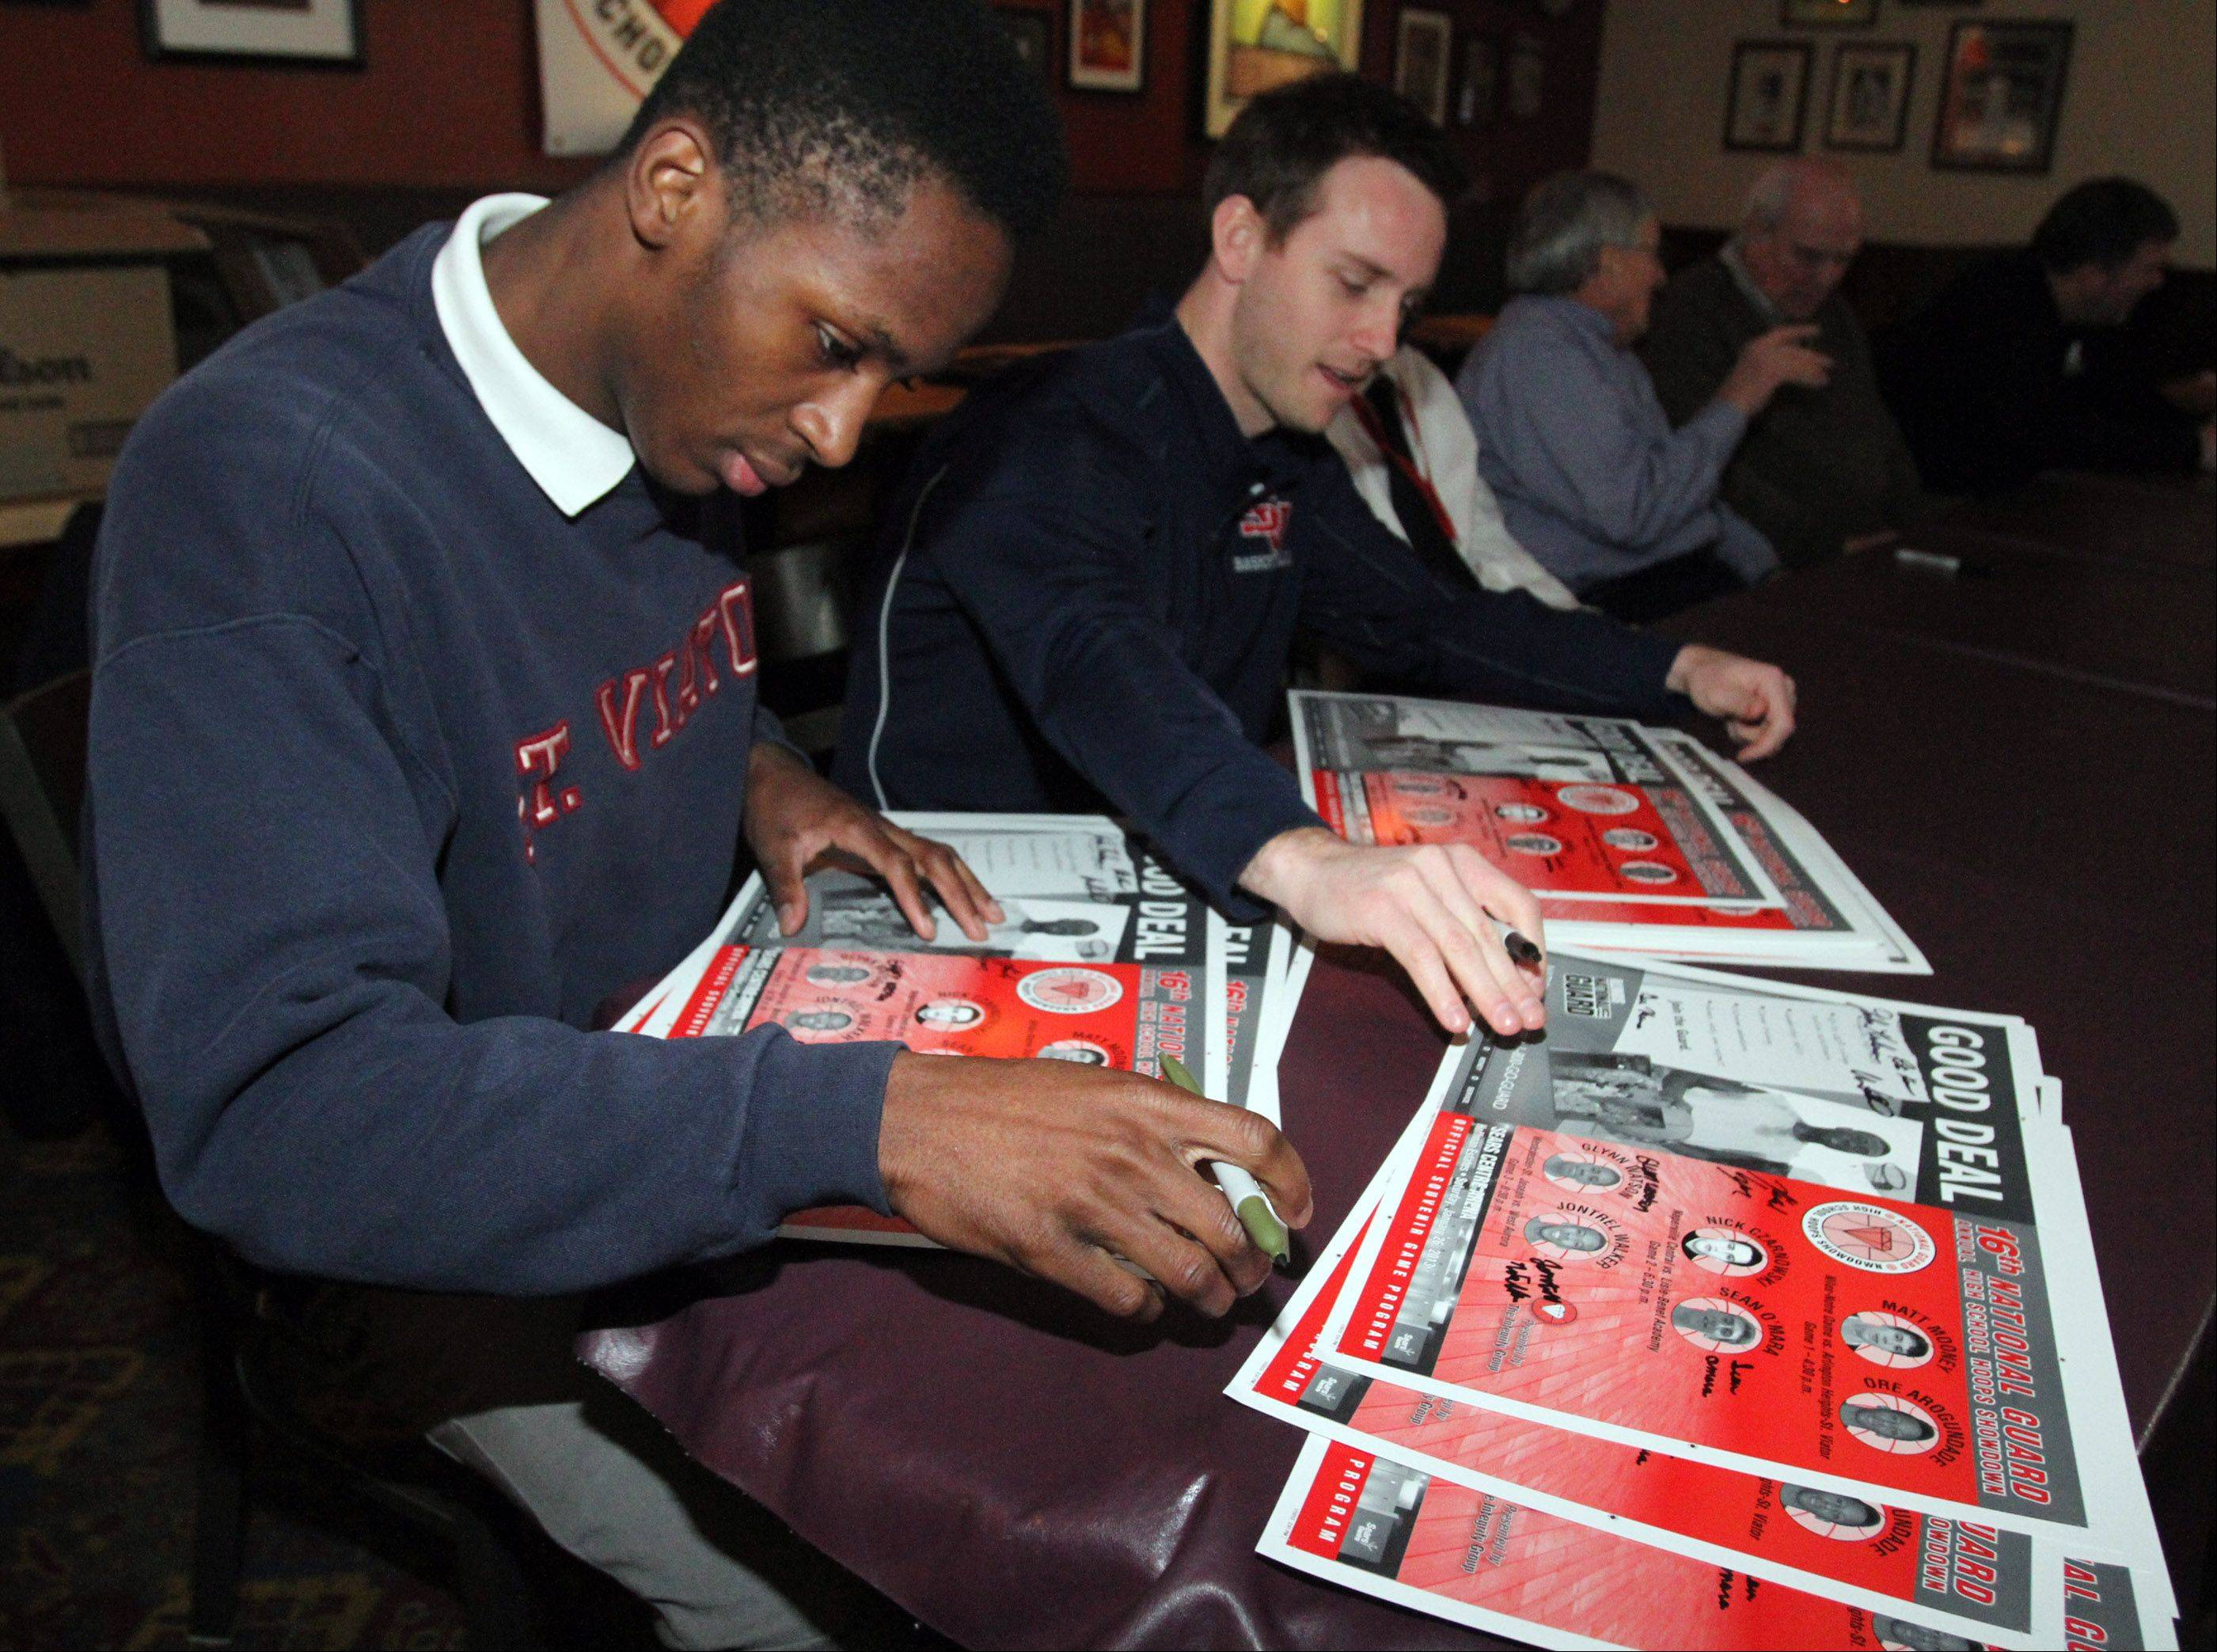 St. Viator basketball coach Mike Howland and guard Ore Arogundade sign posters during a news conference at Lou Malnati's Pizzeria in Schaumburg on Wednesday in advance of the National Guard High School Hoops Showdown on Saturday at the Sears Centre.